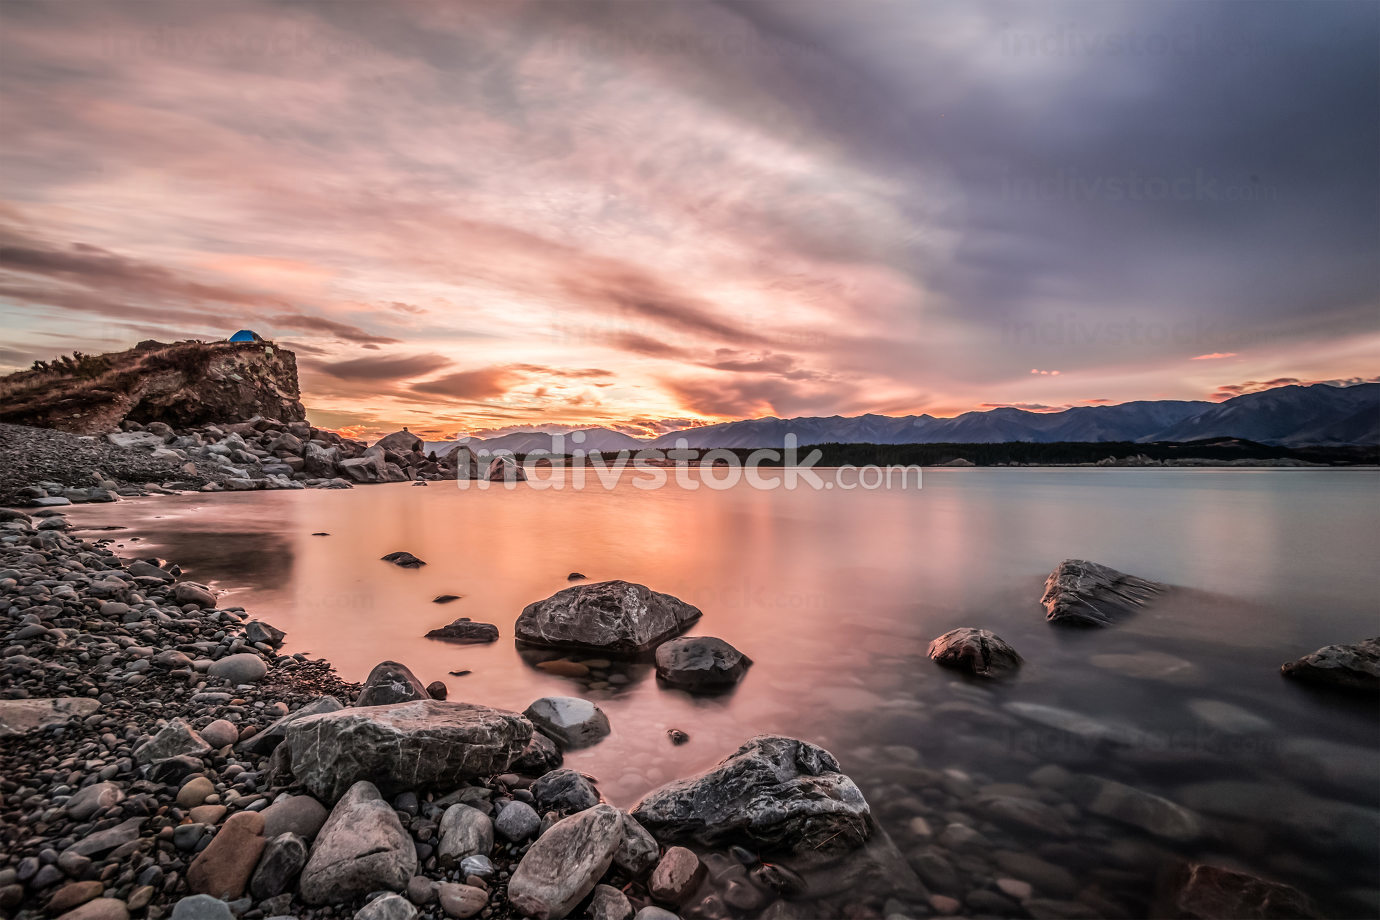 Sunset at Mount Cook National Park alongside Lake Pukaki with snow capped Southern Alps basking in the late winter afternoon's golden light. The setting sun cast vivid pastel  hues on the sky.